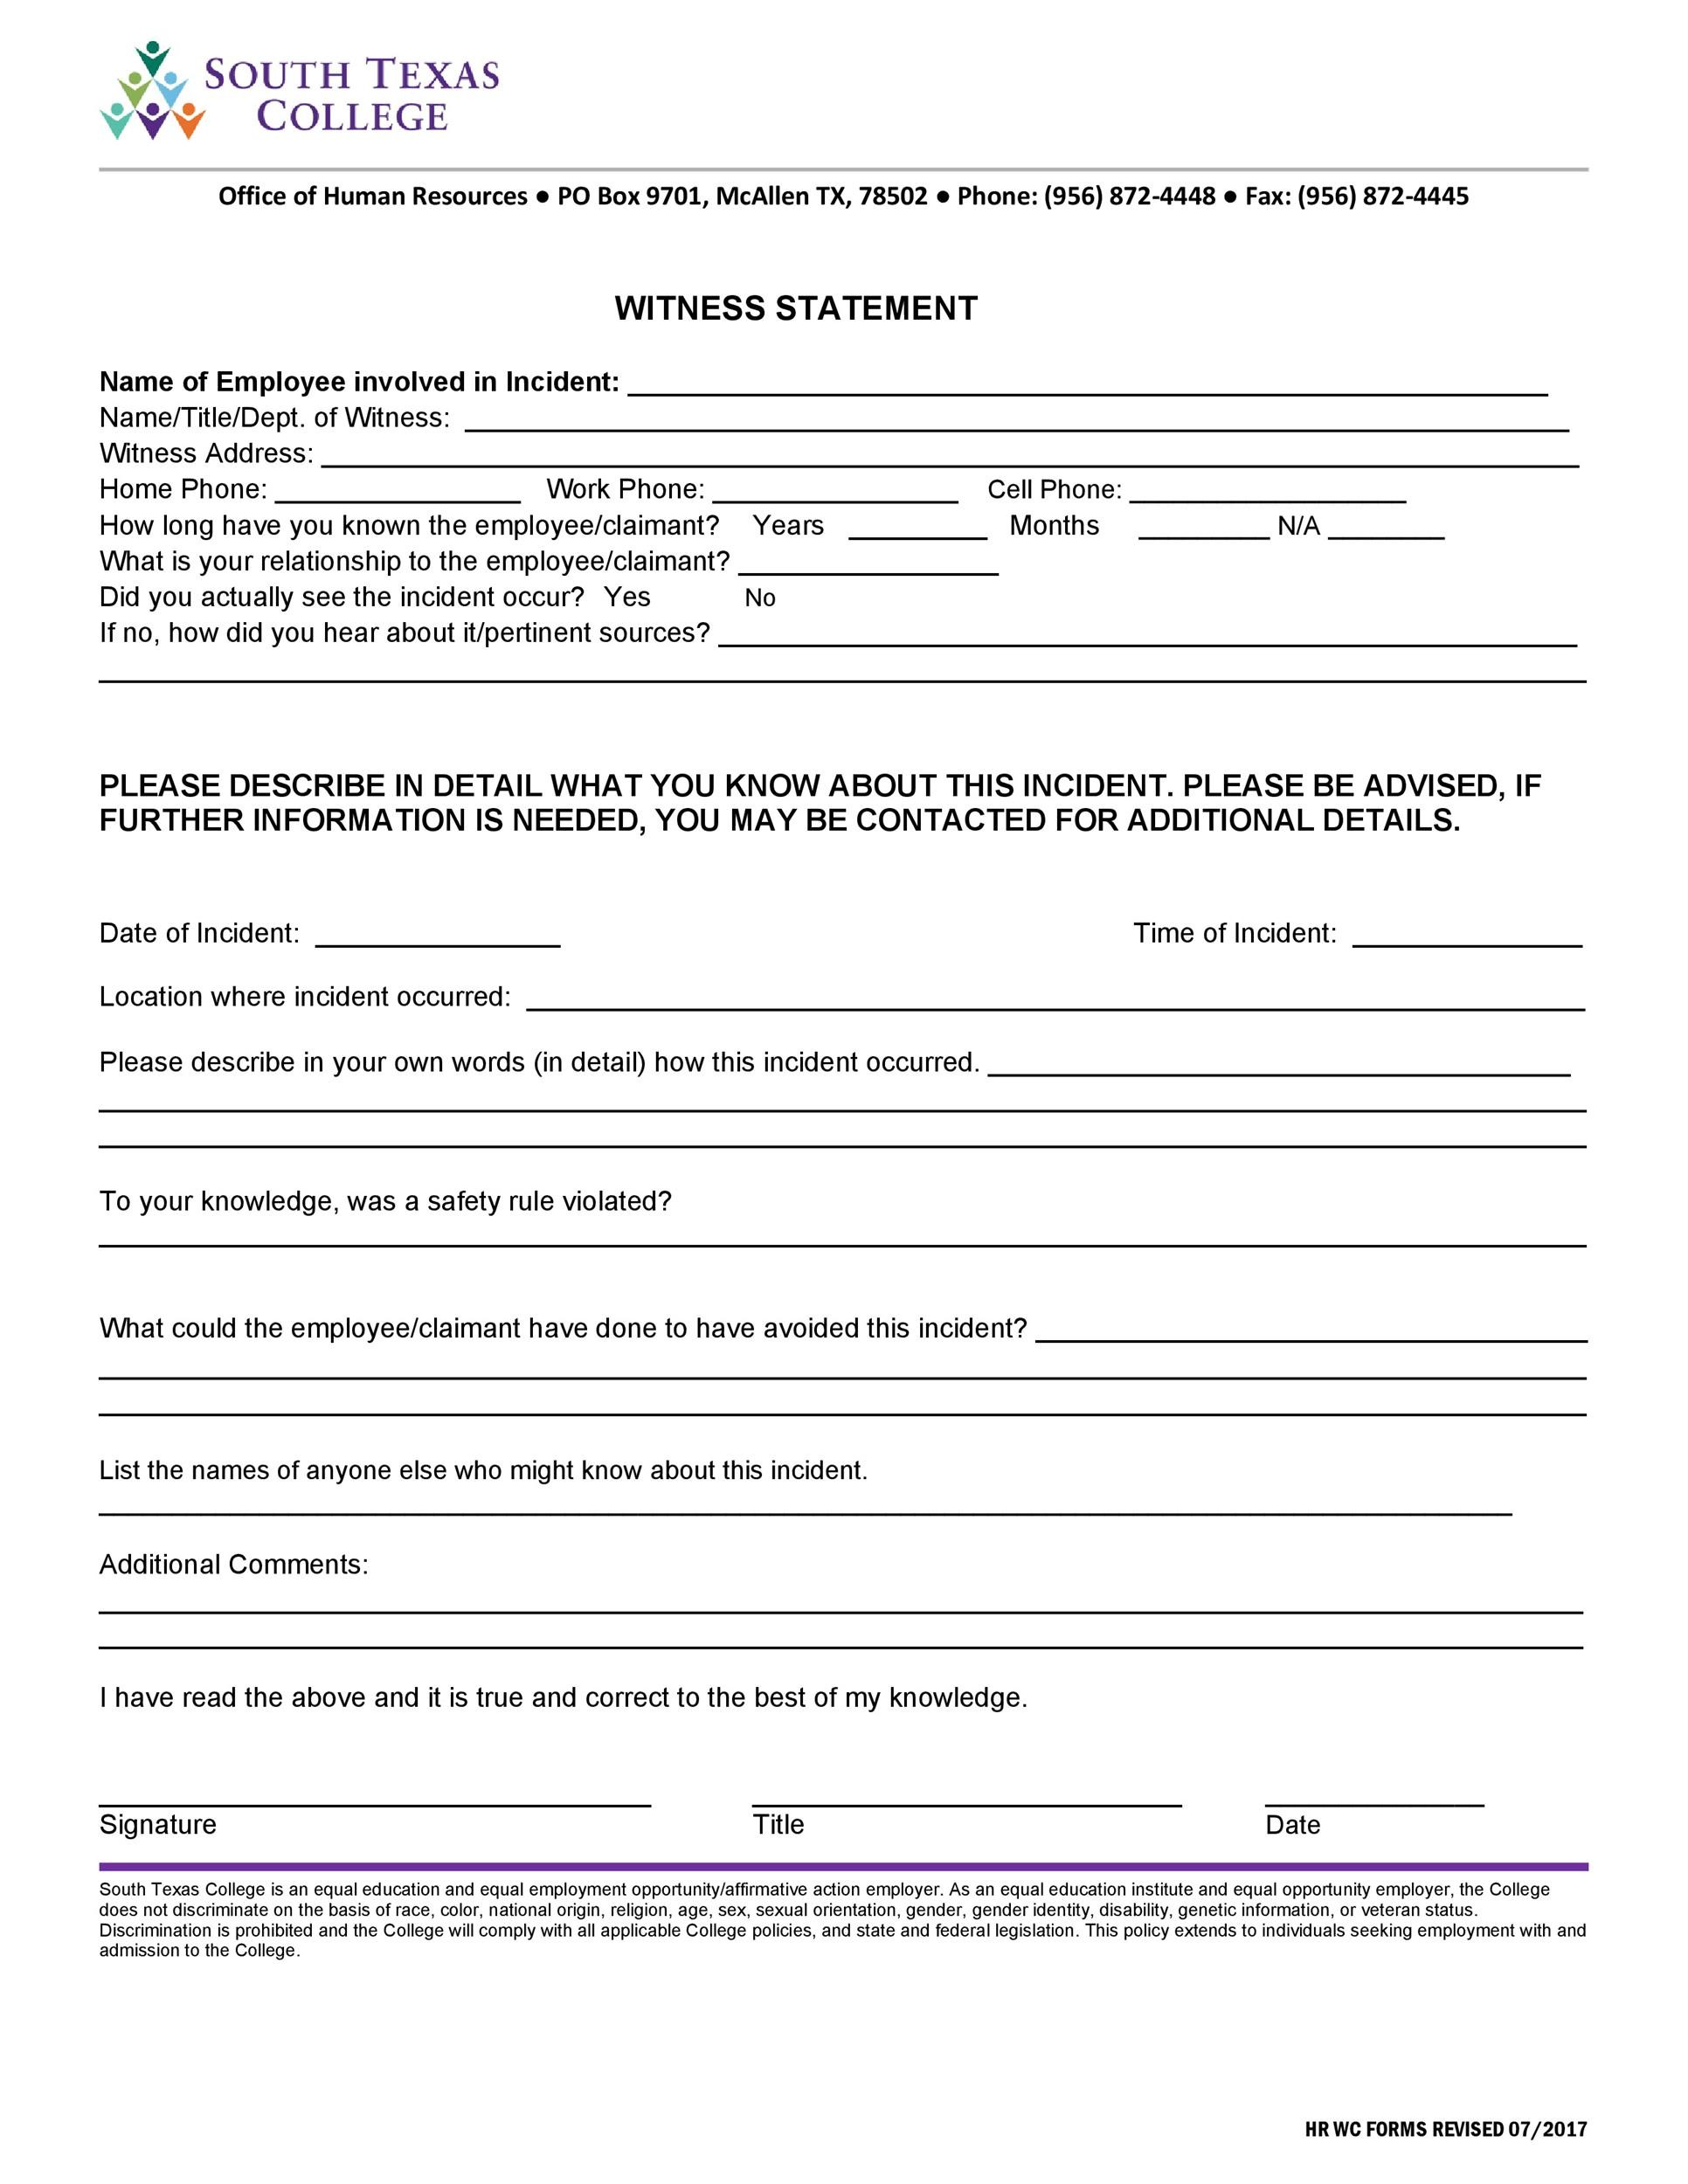 50 Professional Witness Statement Forms & Templates ᐅ